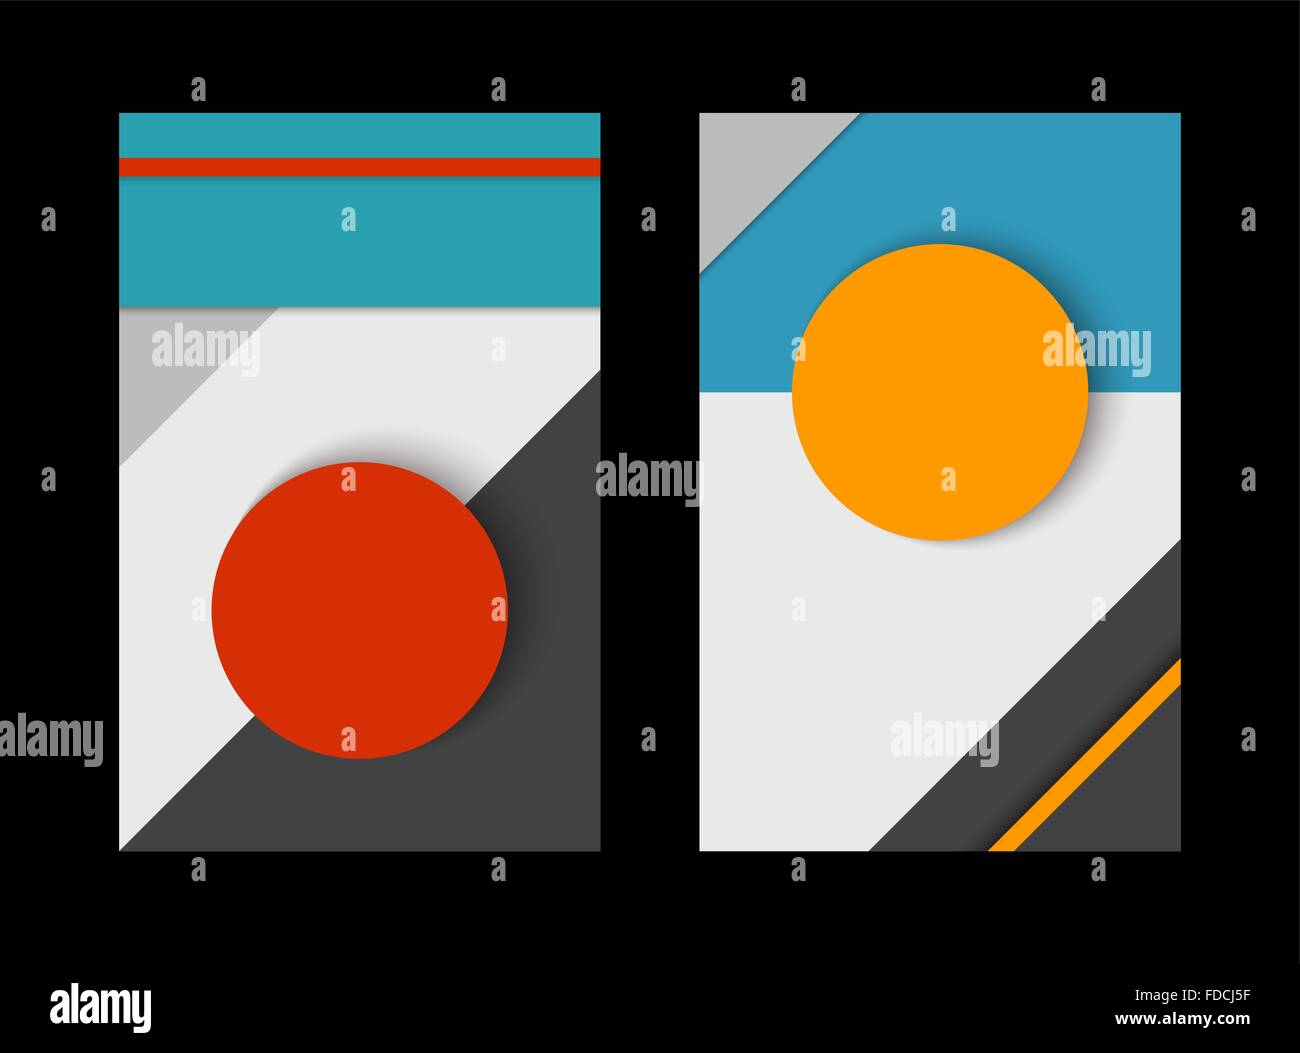 Pics photos 3d colorful abstract background design - Material Design Abstract Background Set Geometry Compositions With Colorful Paper Style Decoration In 3d